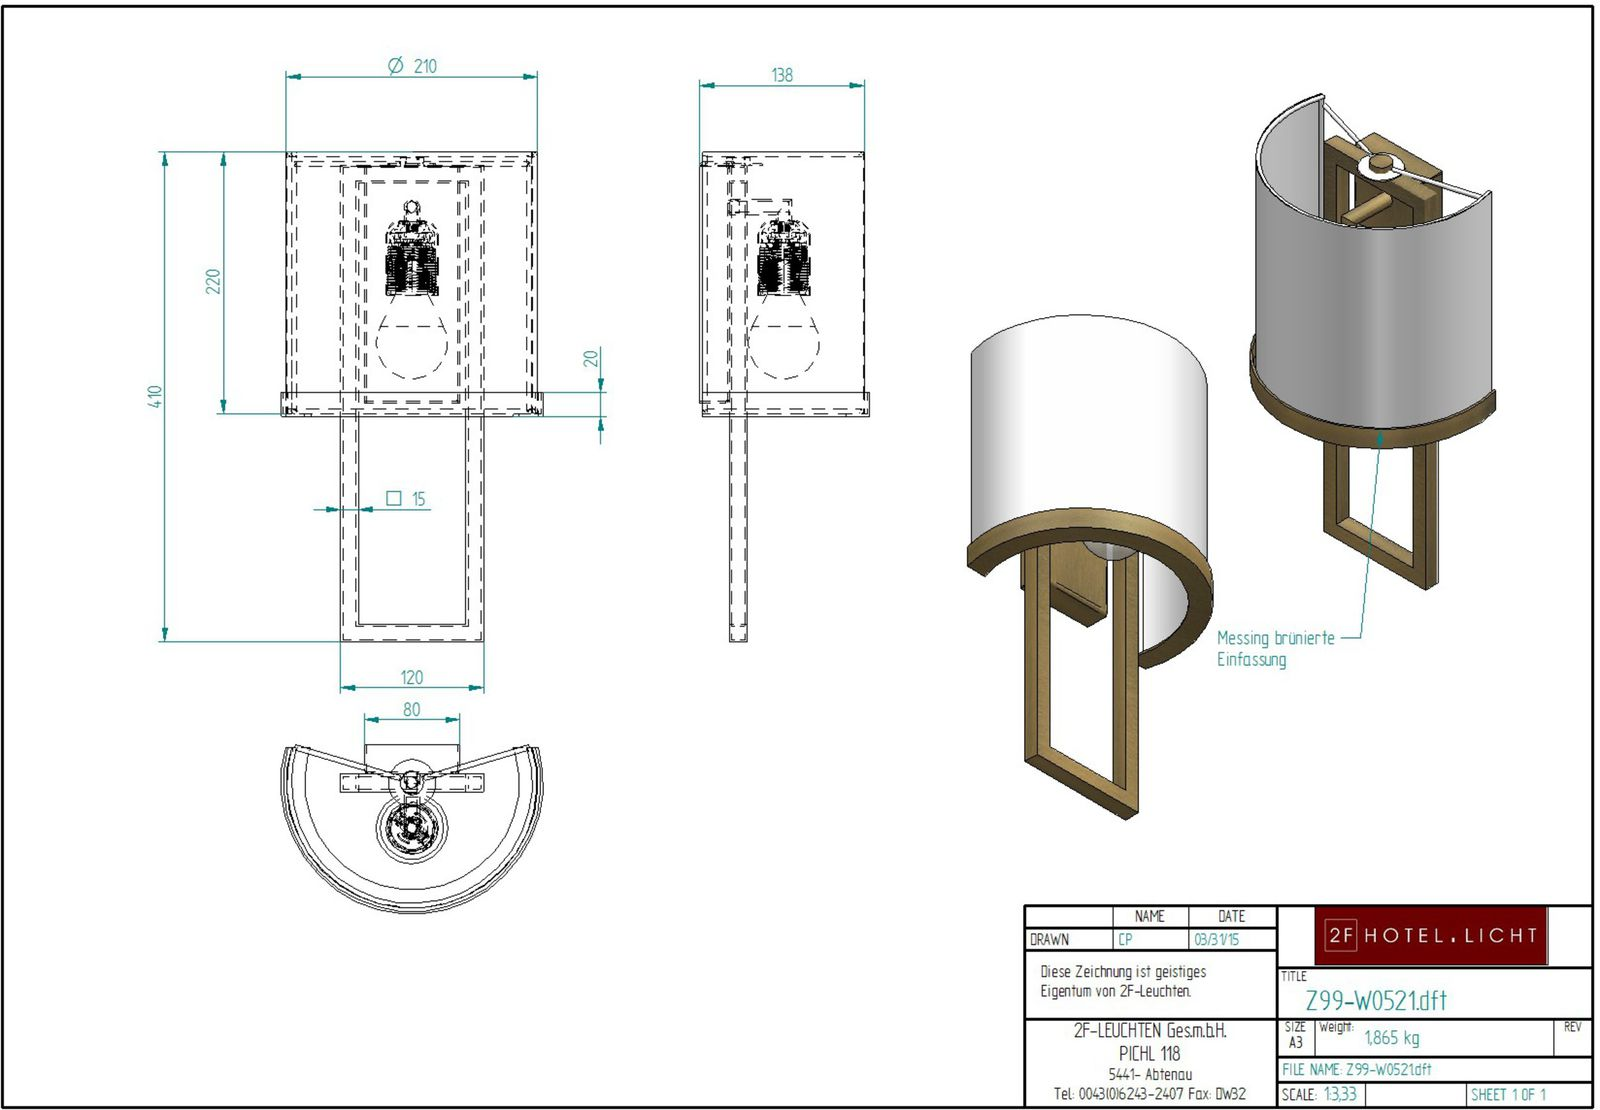 wall light, L:140mm, w:210mm, H.410mm, surface: metal MB brass, techn. Data: 1xE27, LED 10W 230V